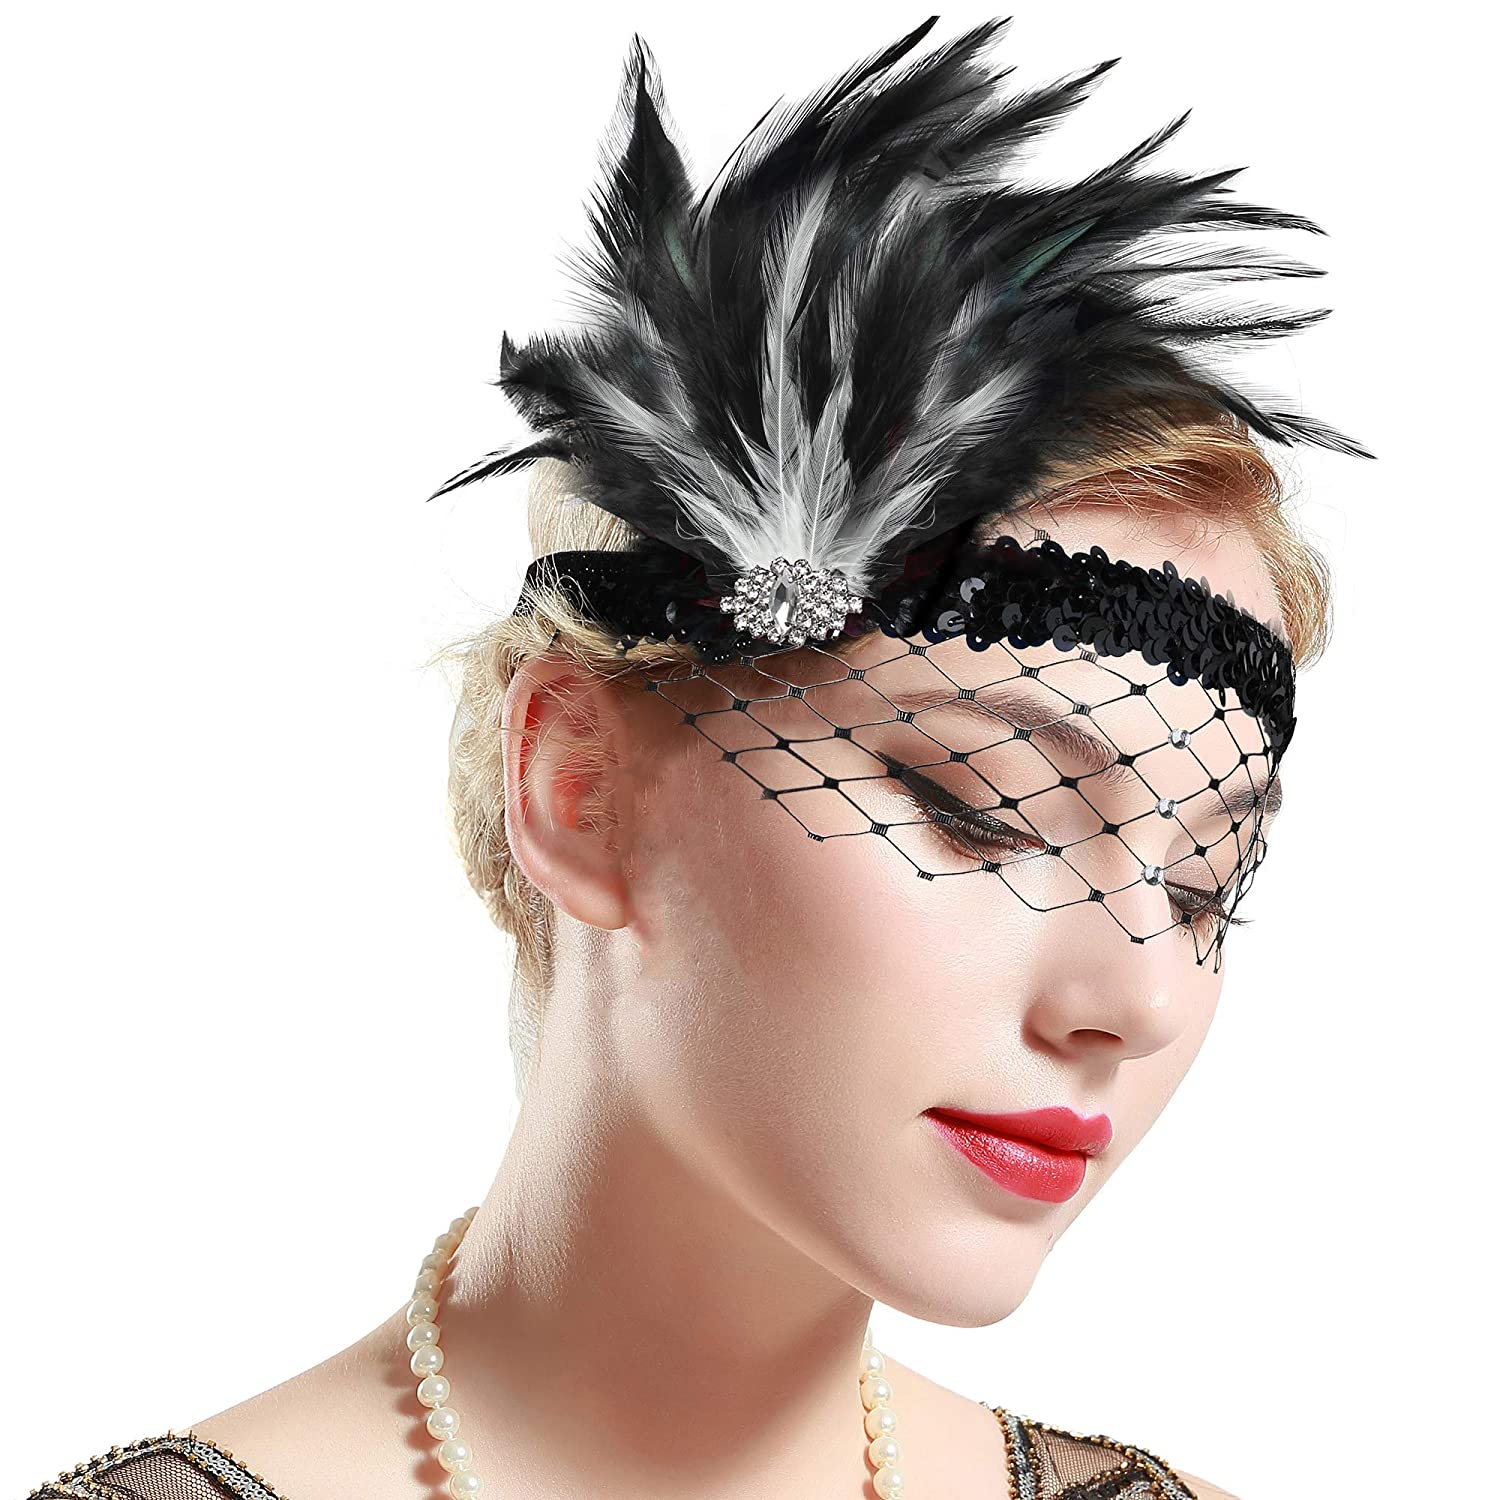 1920s Flapper Headband, Gatsby Headpiece, Wigs BABEYOND 1920s Flapper Headband Roaring 20s Feather Headpiece Crystal Great Gatsby Headband with Net 1920s Flapper Accessories (Black & White) $15.99 AT vintagedancer.com